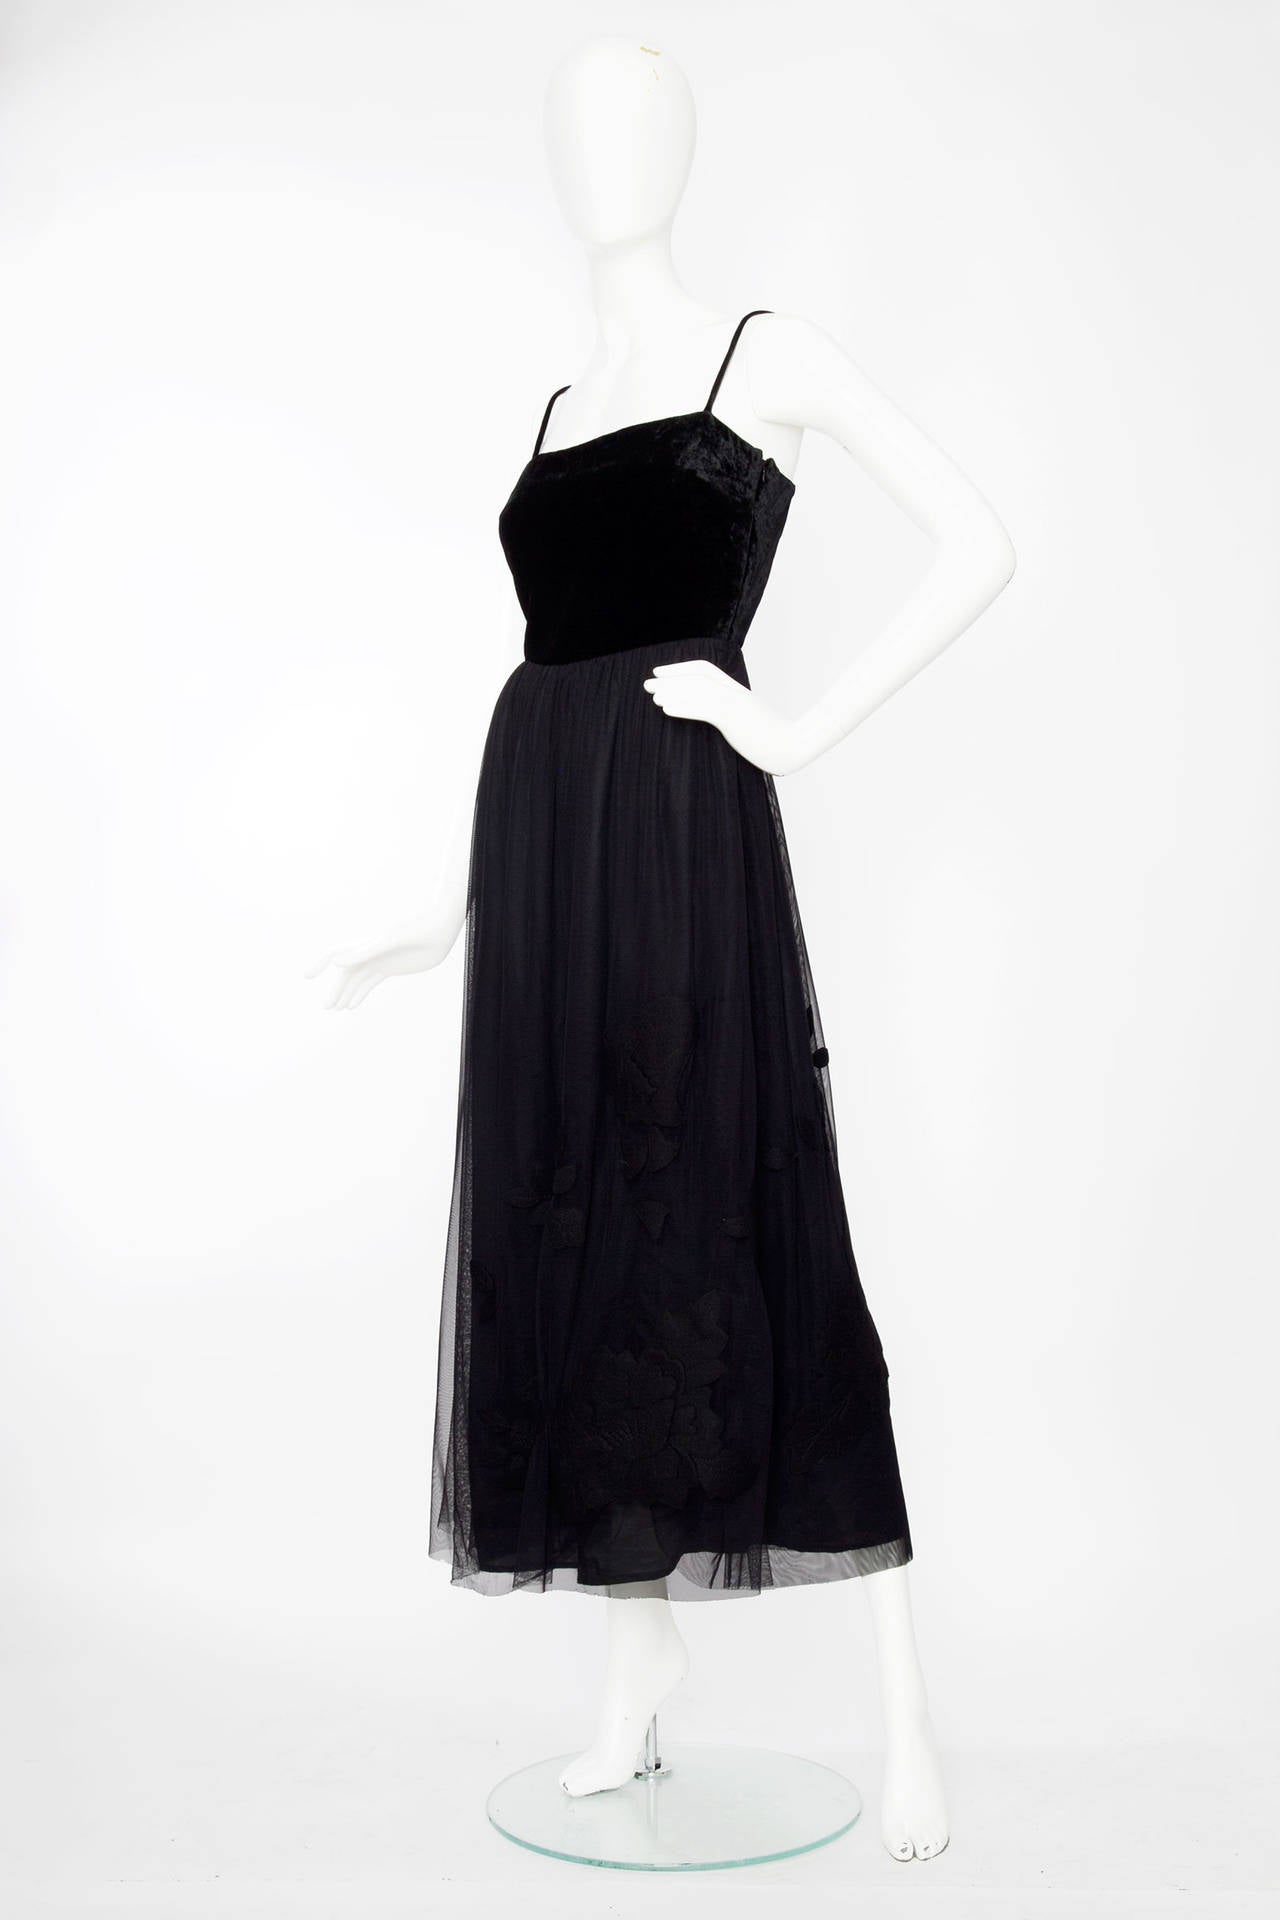 A late 1980s early 1990s Moschino Cheap & Chic ball gown with a silk velvet top and tulle skirt with felt flower applique. The skirt cuts just above the ankle and is fully lined. The dress has a side zipper closure. 